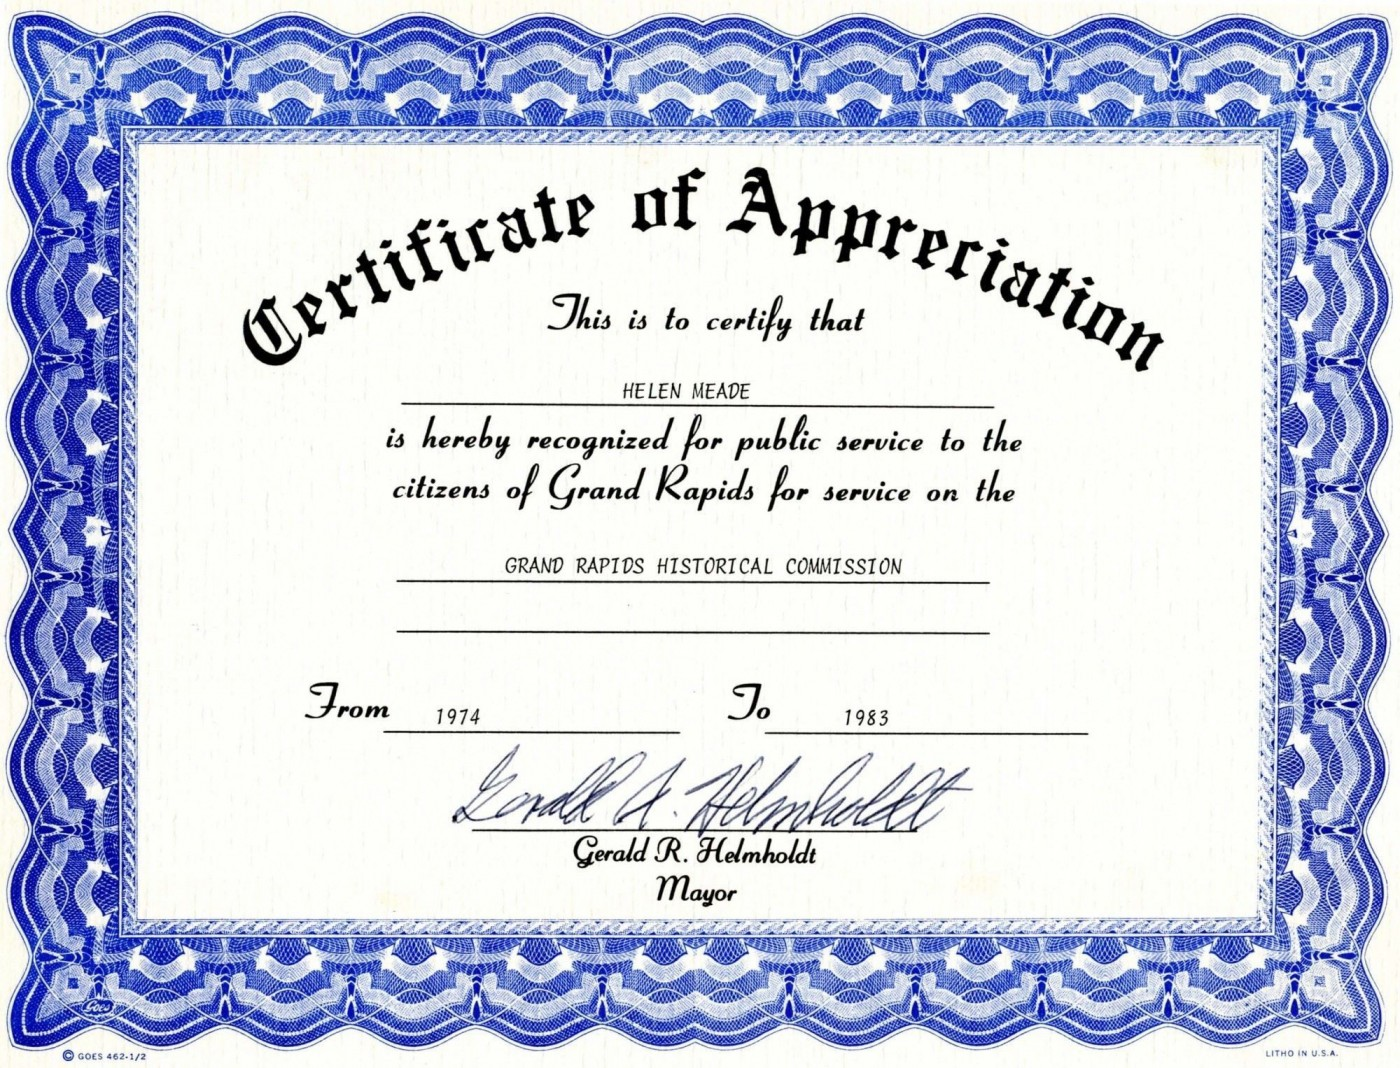 008 Wondrou Certificate Of Award Template Word Free High Definition 1400